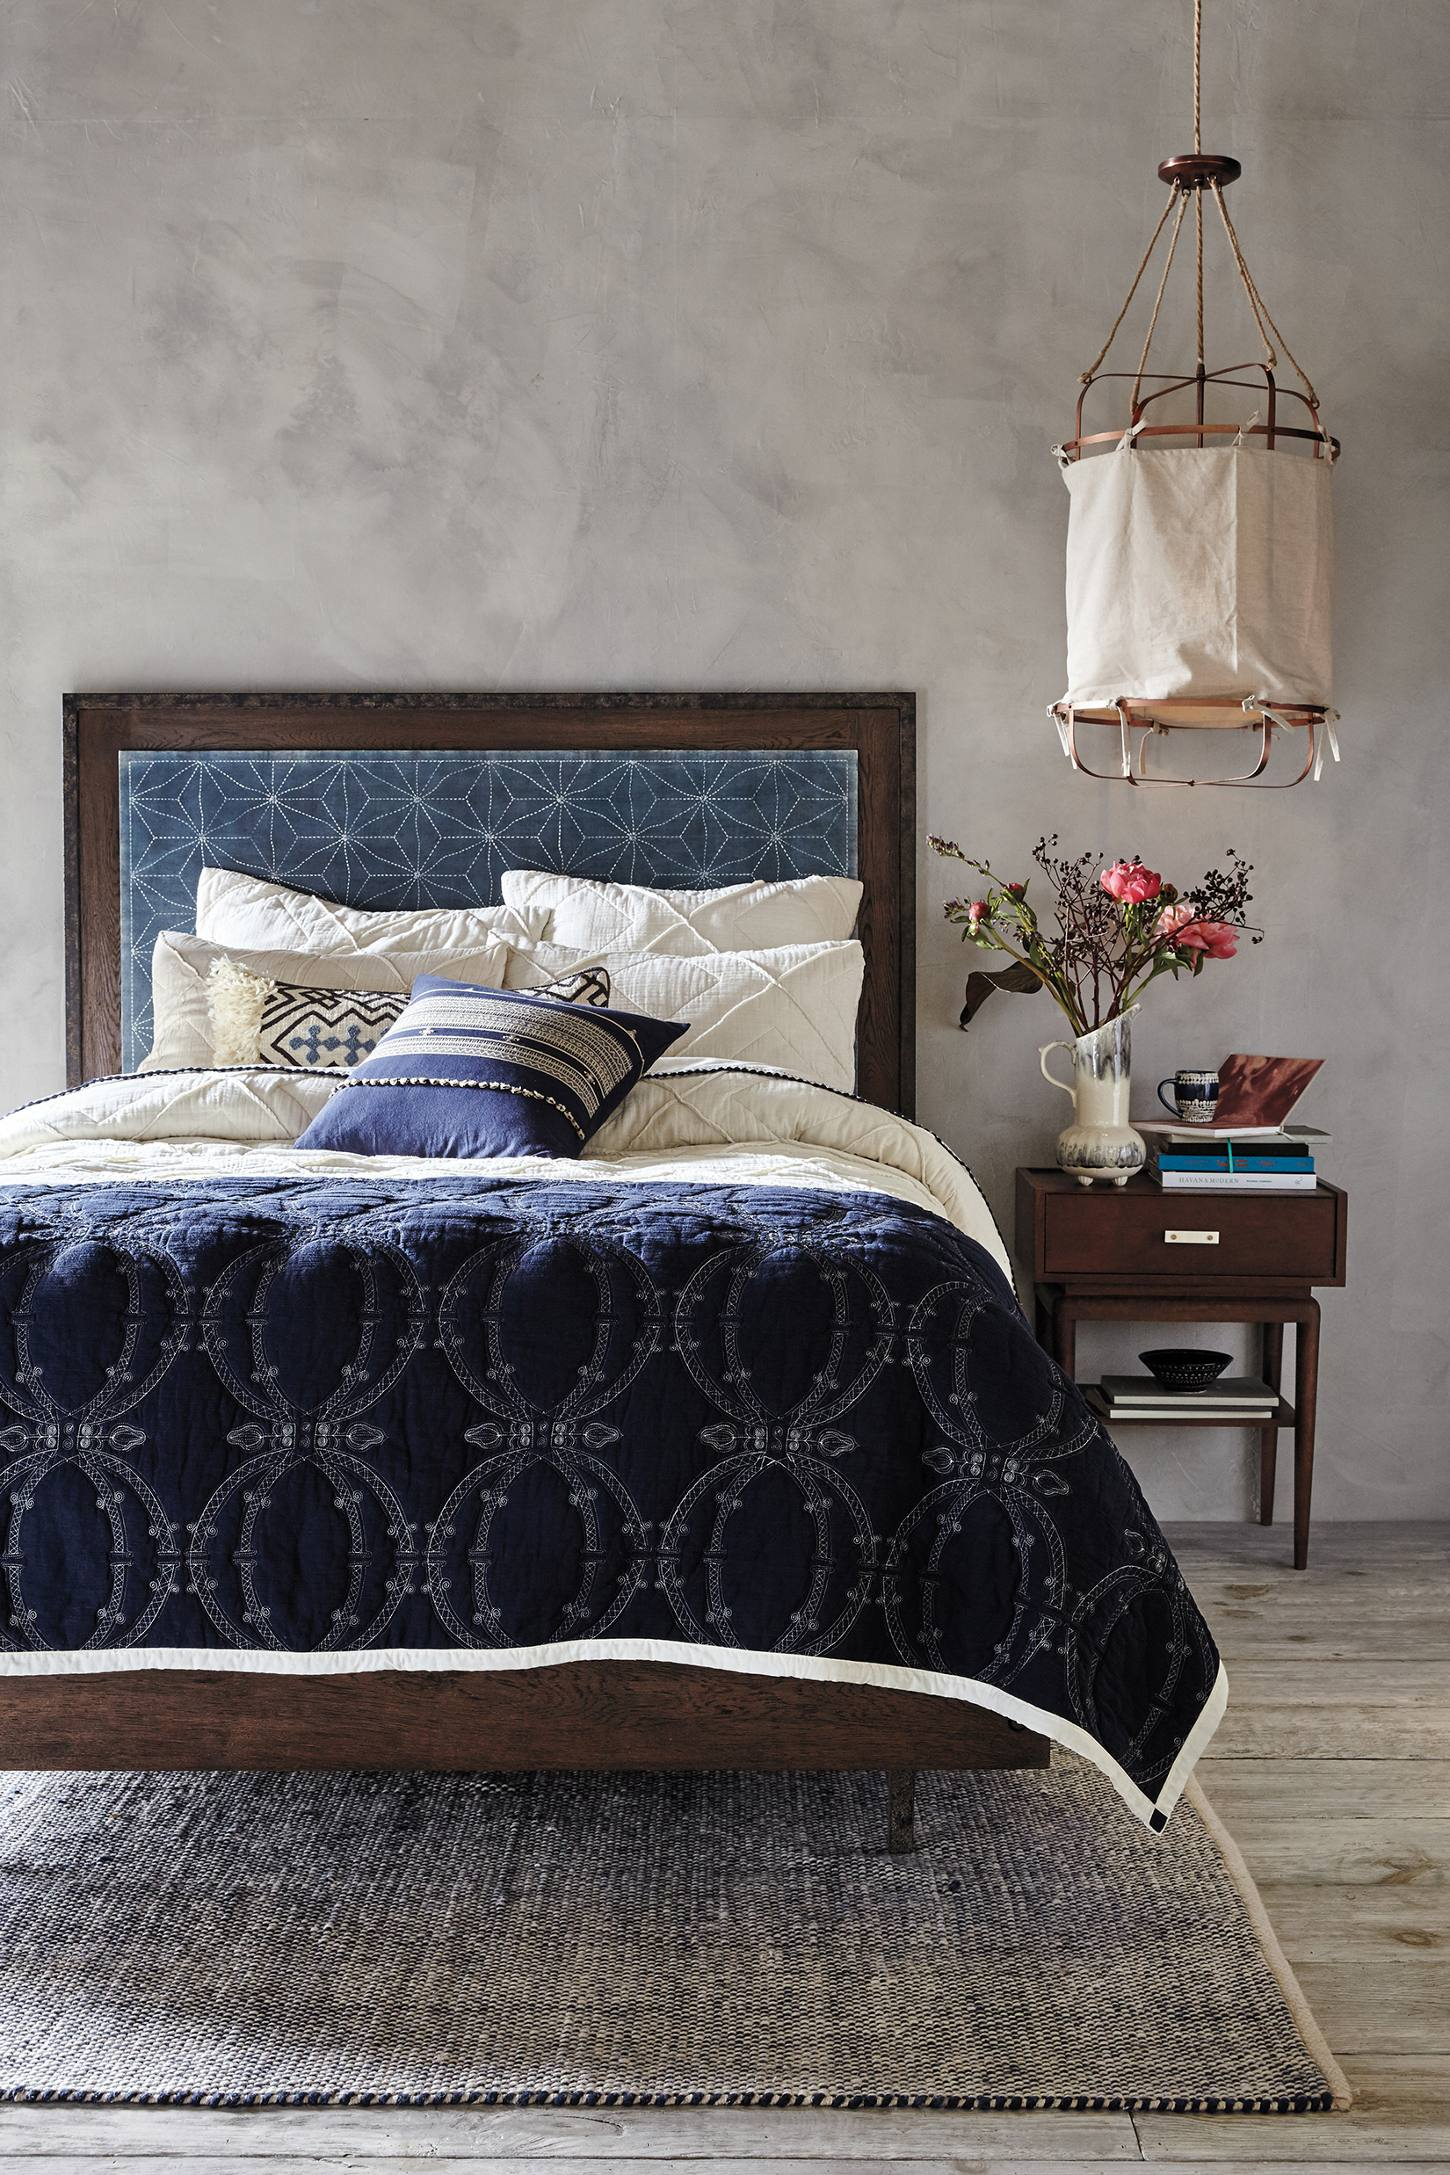 Design an Elegant Bedroom in 5 Easy Steps